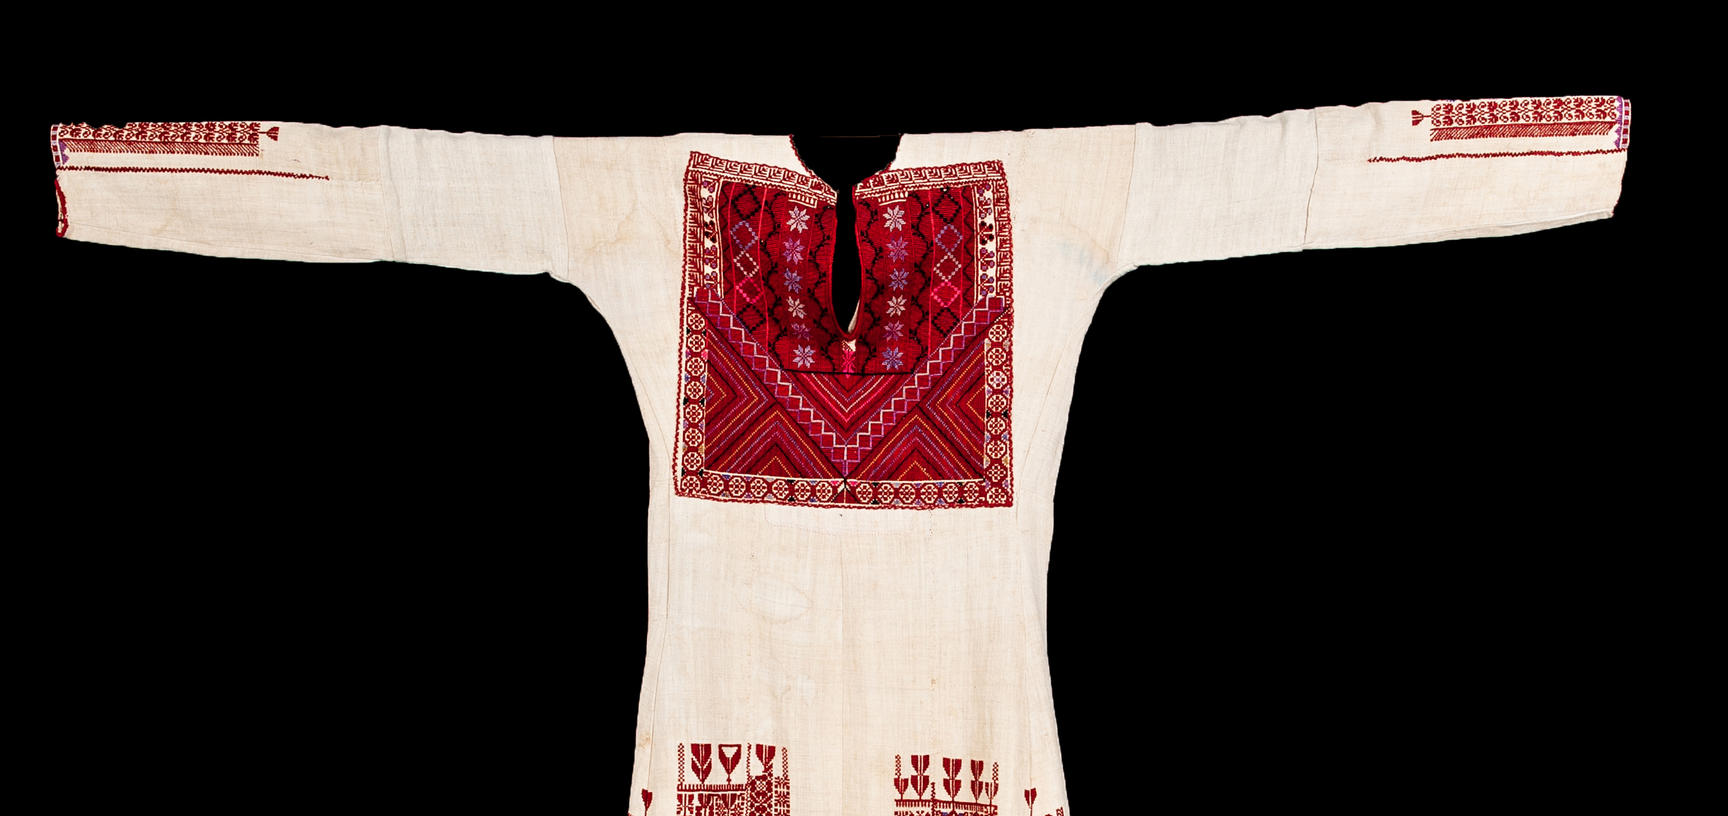 2018.37.19 – Traditional woman's dress ('thob') from Ramallah region, Palestine. Natural linen with hand embroidered decoration in silk. Donated by Jenny Balfour-Paul. Purchased by donor in Amman, Jordan in 1974. ©Pitt Rivers Museum